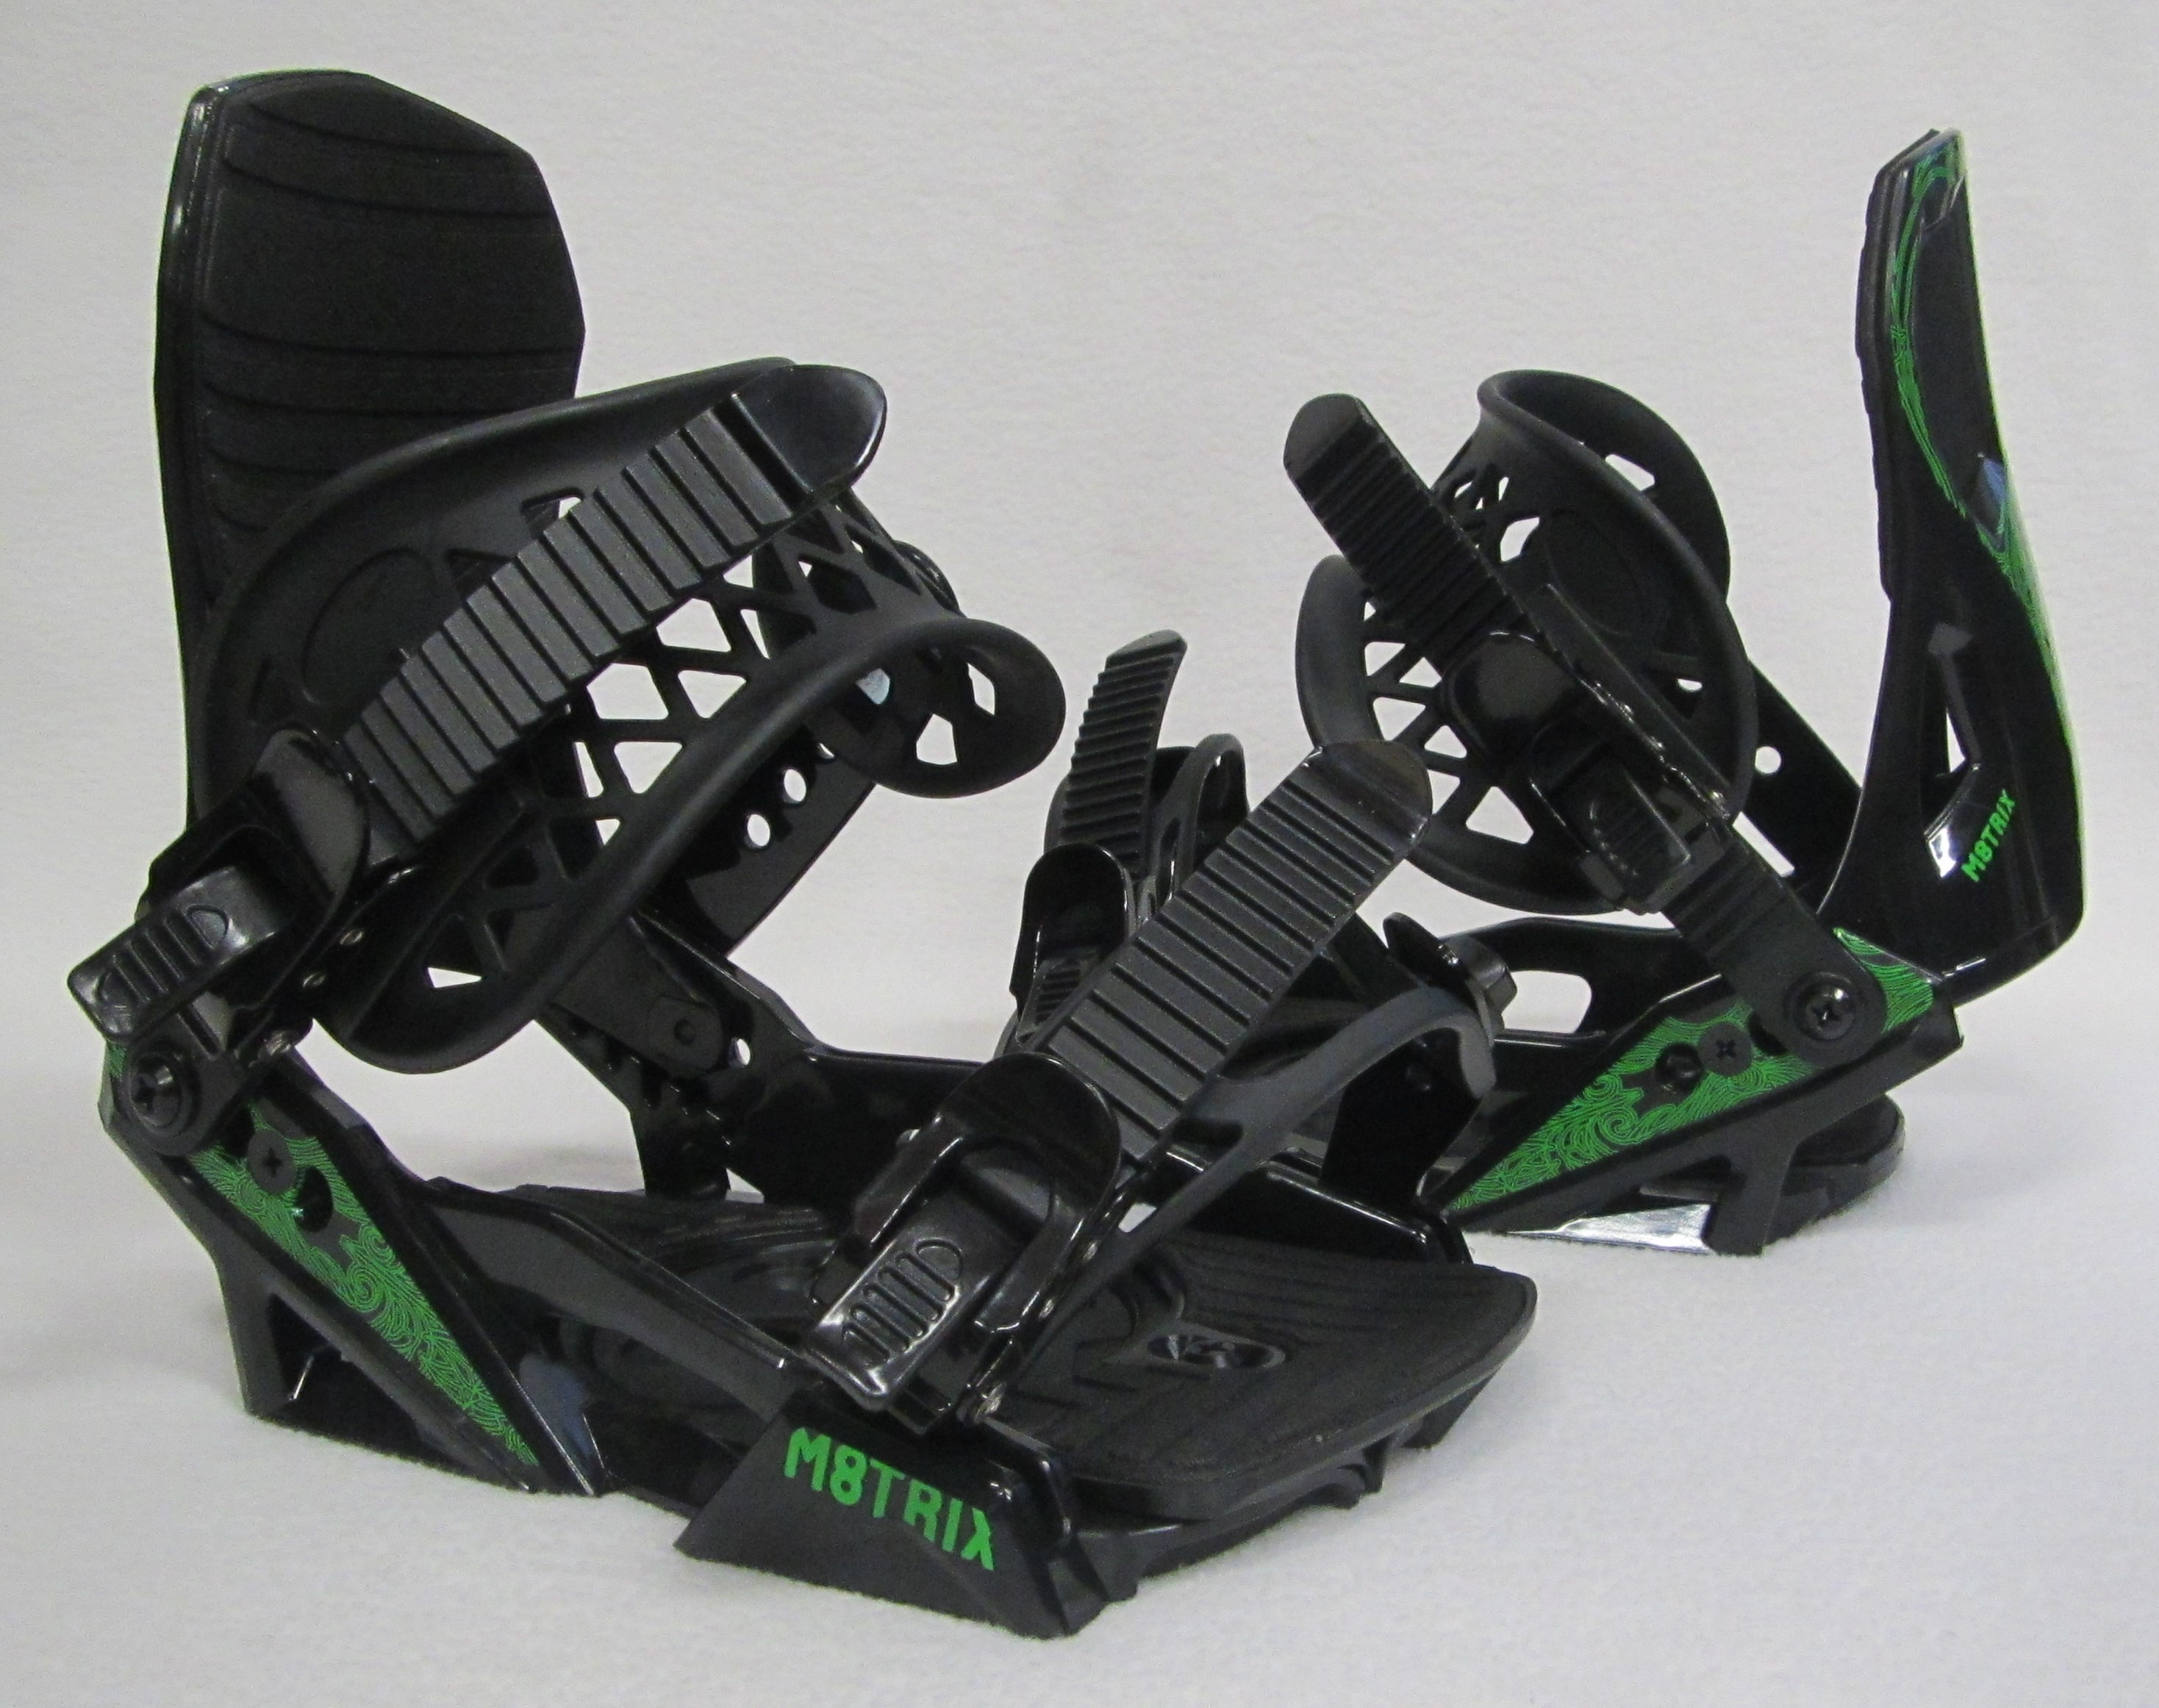 JR KIDS M8TRIX WINTER SNOWBOARD BINDINGS (BLACK GREEN) SIZES: 2-6 by M8TRIX